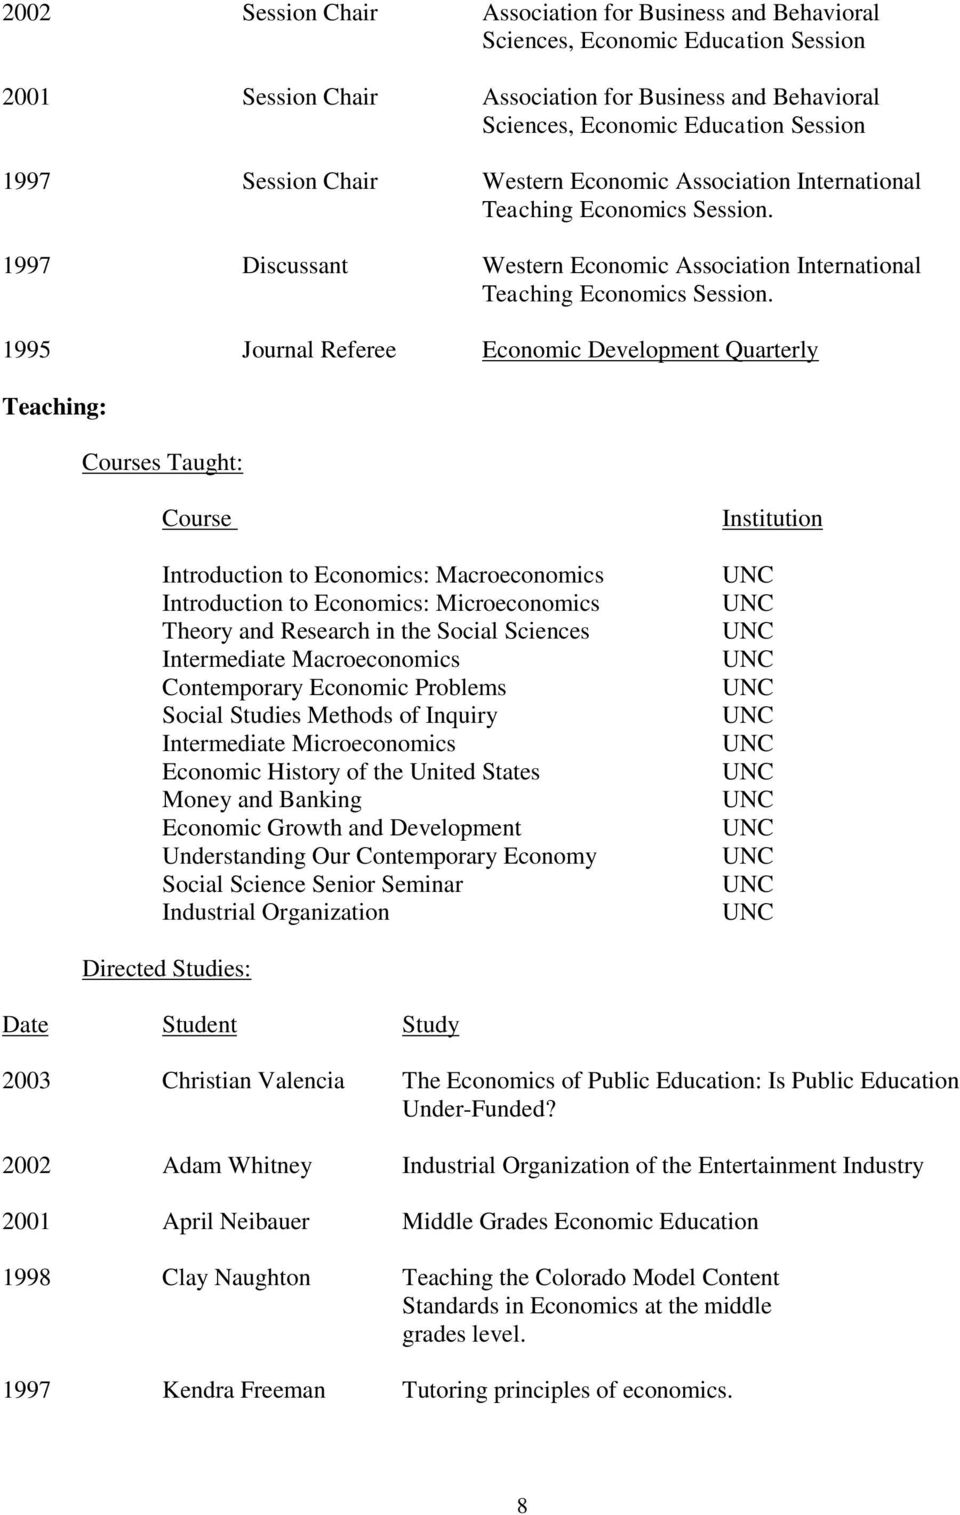 1995 Journal Referee Economic Development Quarterly Teaching: Courses Taught: Course Introduction to Economics: Macroeconomics Introduction to Economics: Microeconomics Theory and Research in the